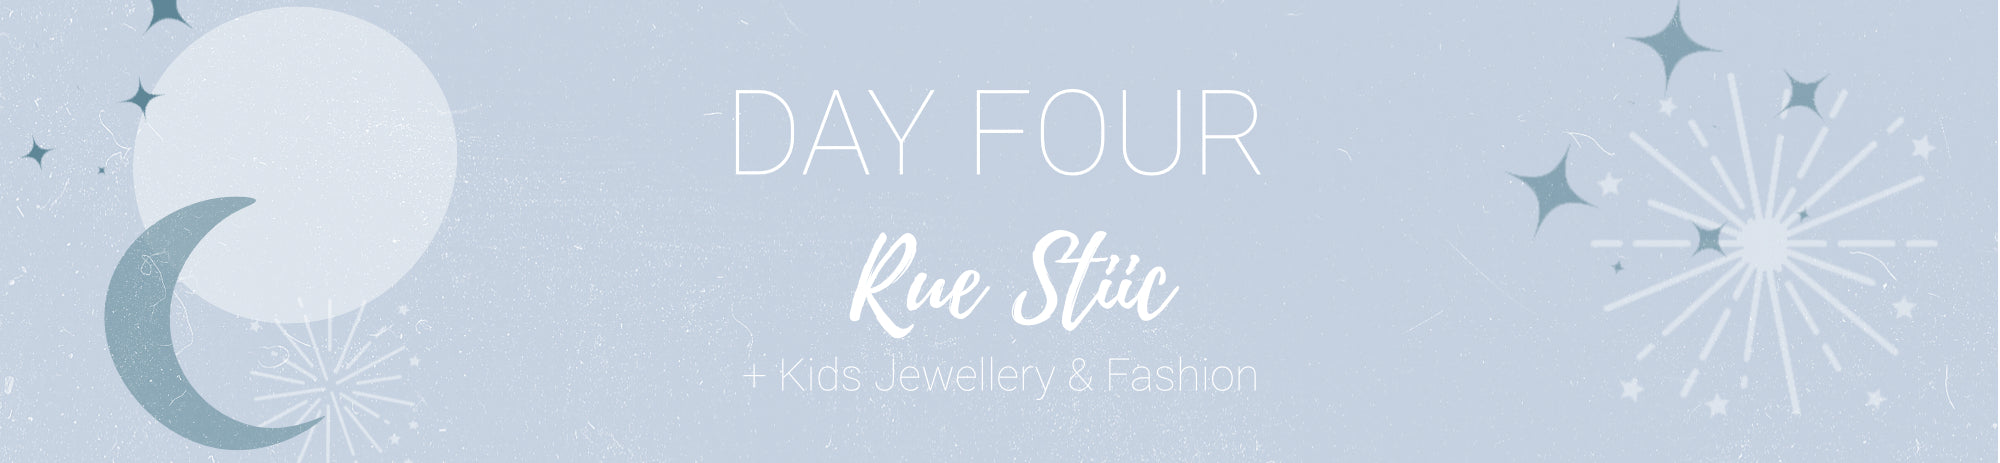 20% off Rue Stiic + Kids Jewellery & Clothing Use Code: CHEER4